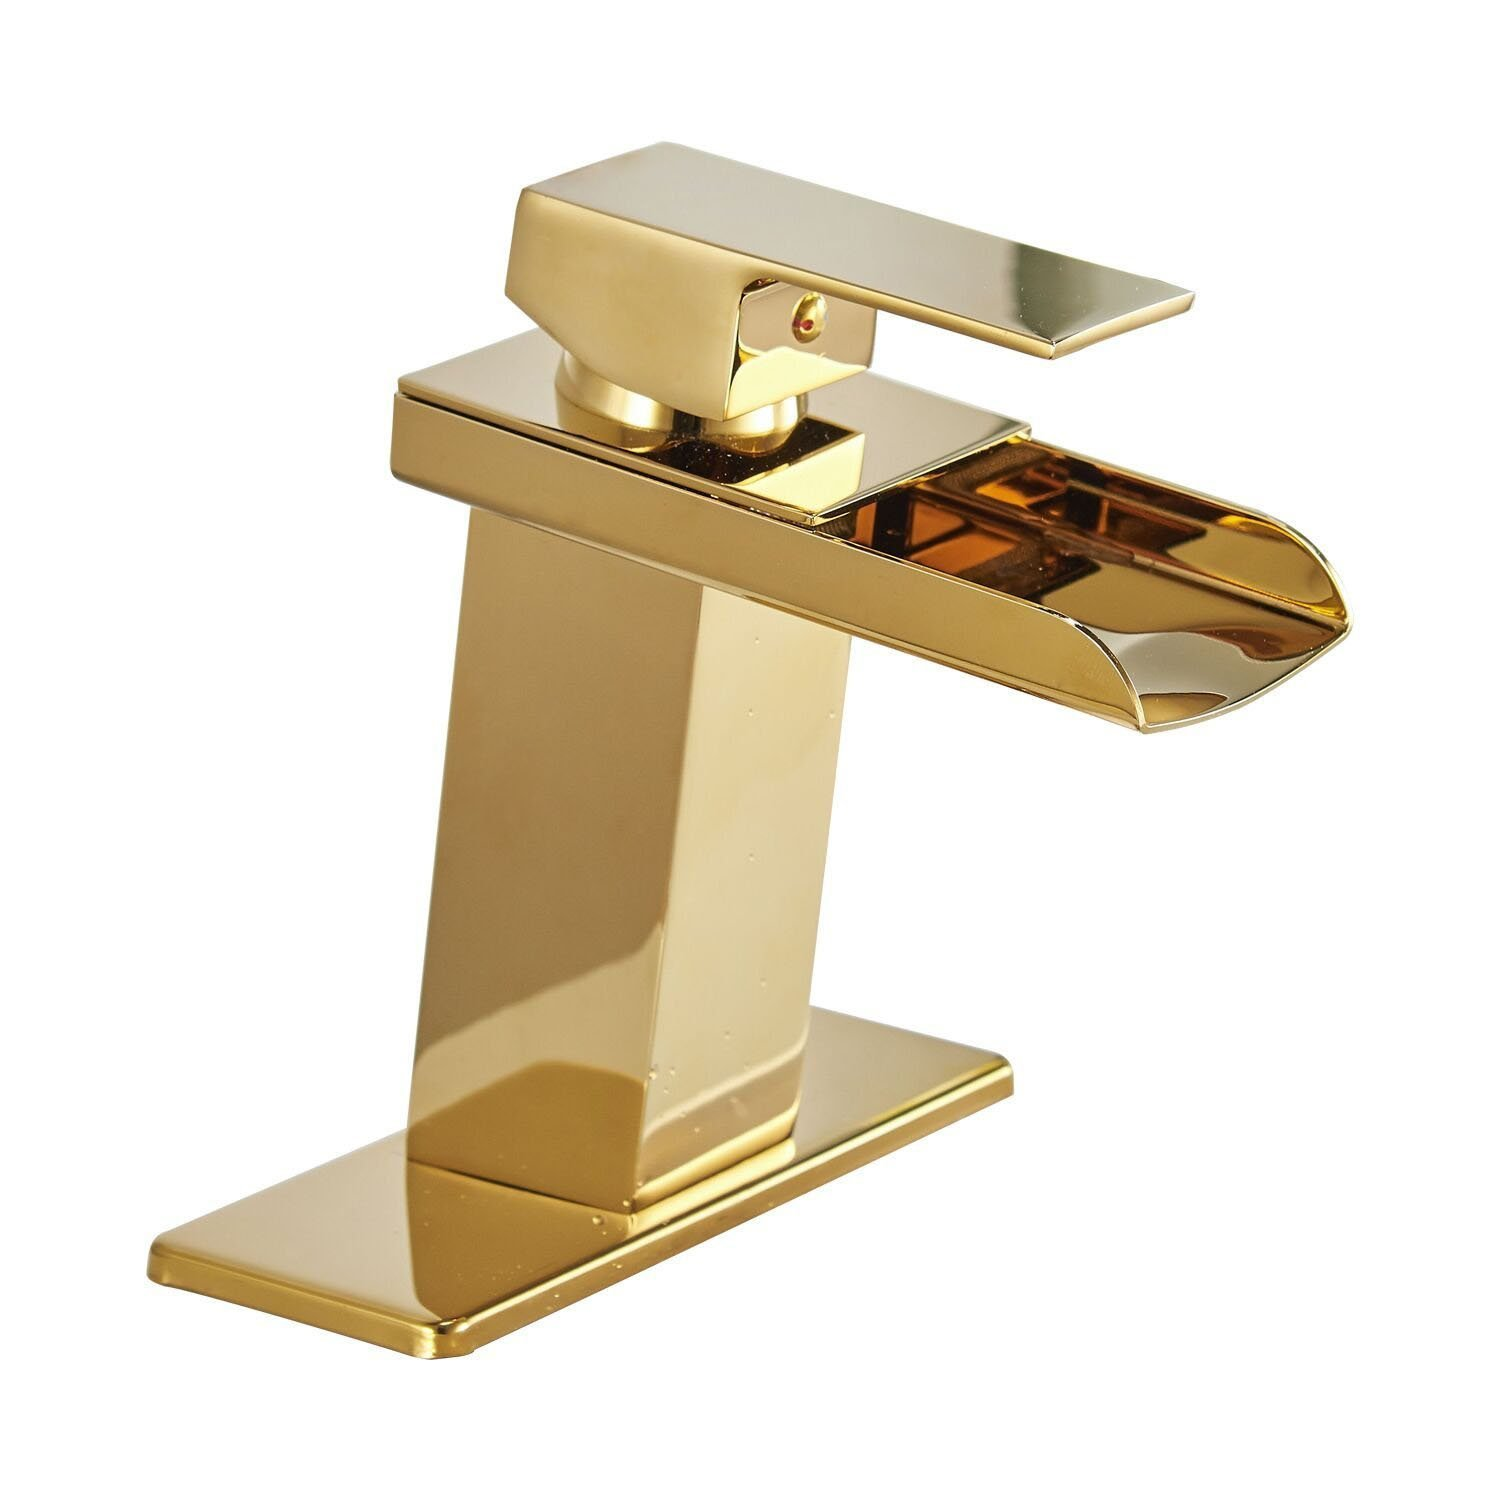 Homevacious Bathroom Sink Faucet Gold Waterfall Bath Modern Lavatory Faucets Single Handle One Hole Deck Mount by Homevacious